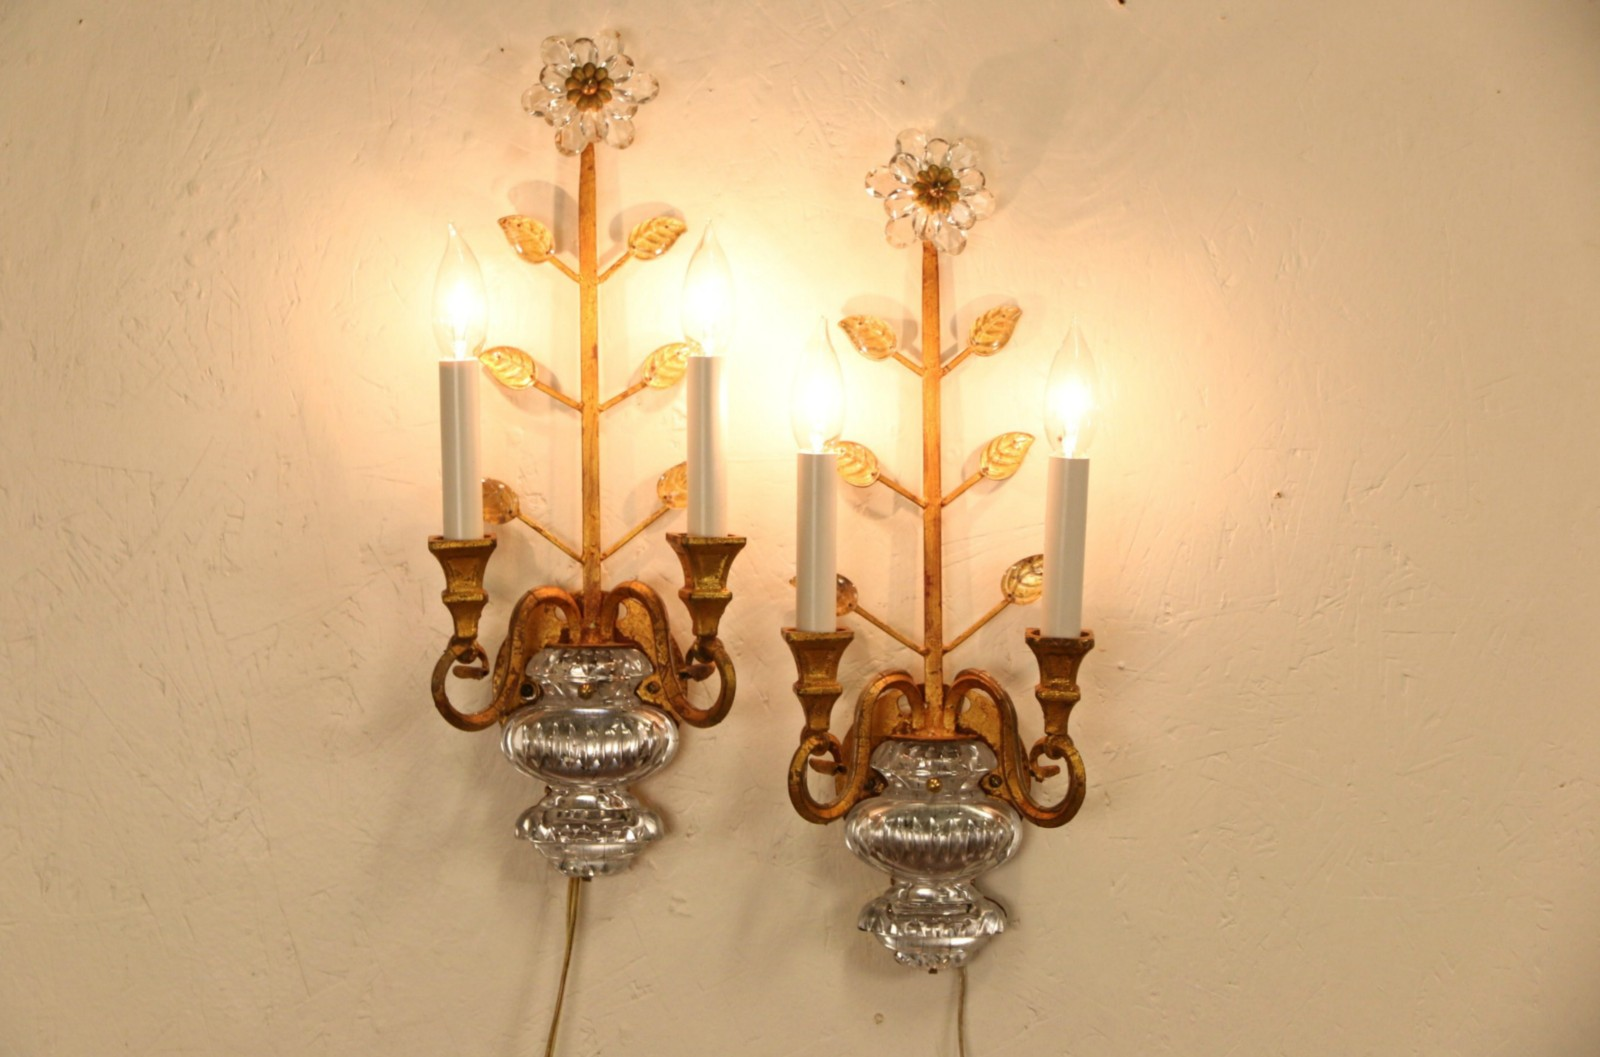 Sold Pair Of Italian Vintage Gold Amp Crystal Wall Sconce